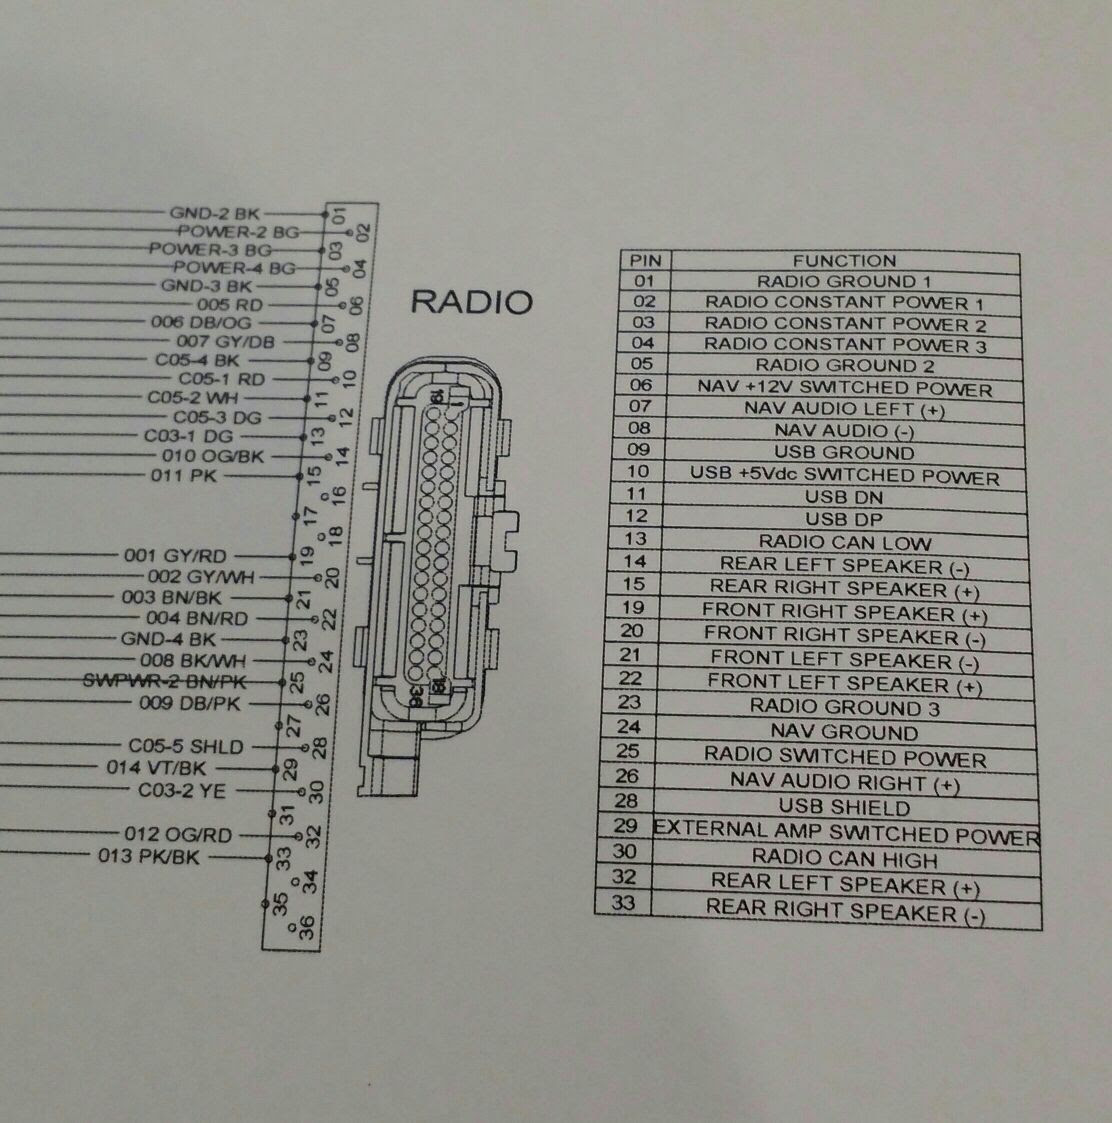 scosche stereo wiring diagrams for 2004 chevy aveo polaris slingshot radio    wiring       diagram    general    wiring     polaris slingshot radio    wiring       diagram    general    wiring